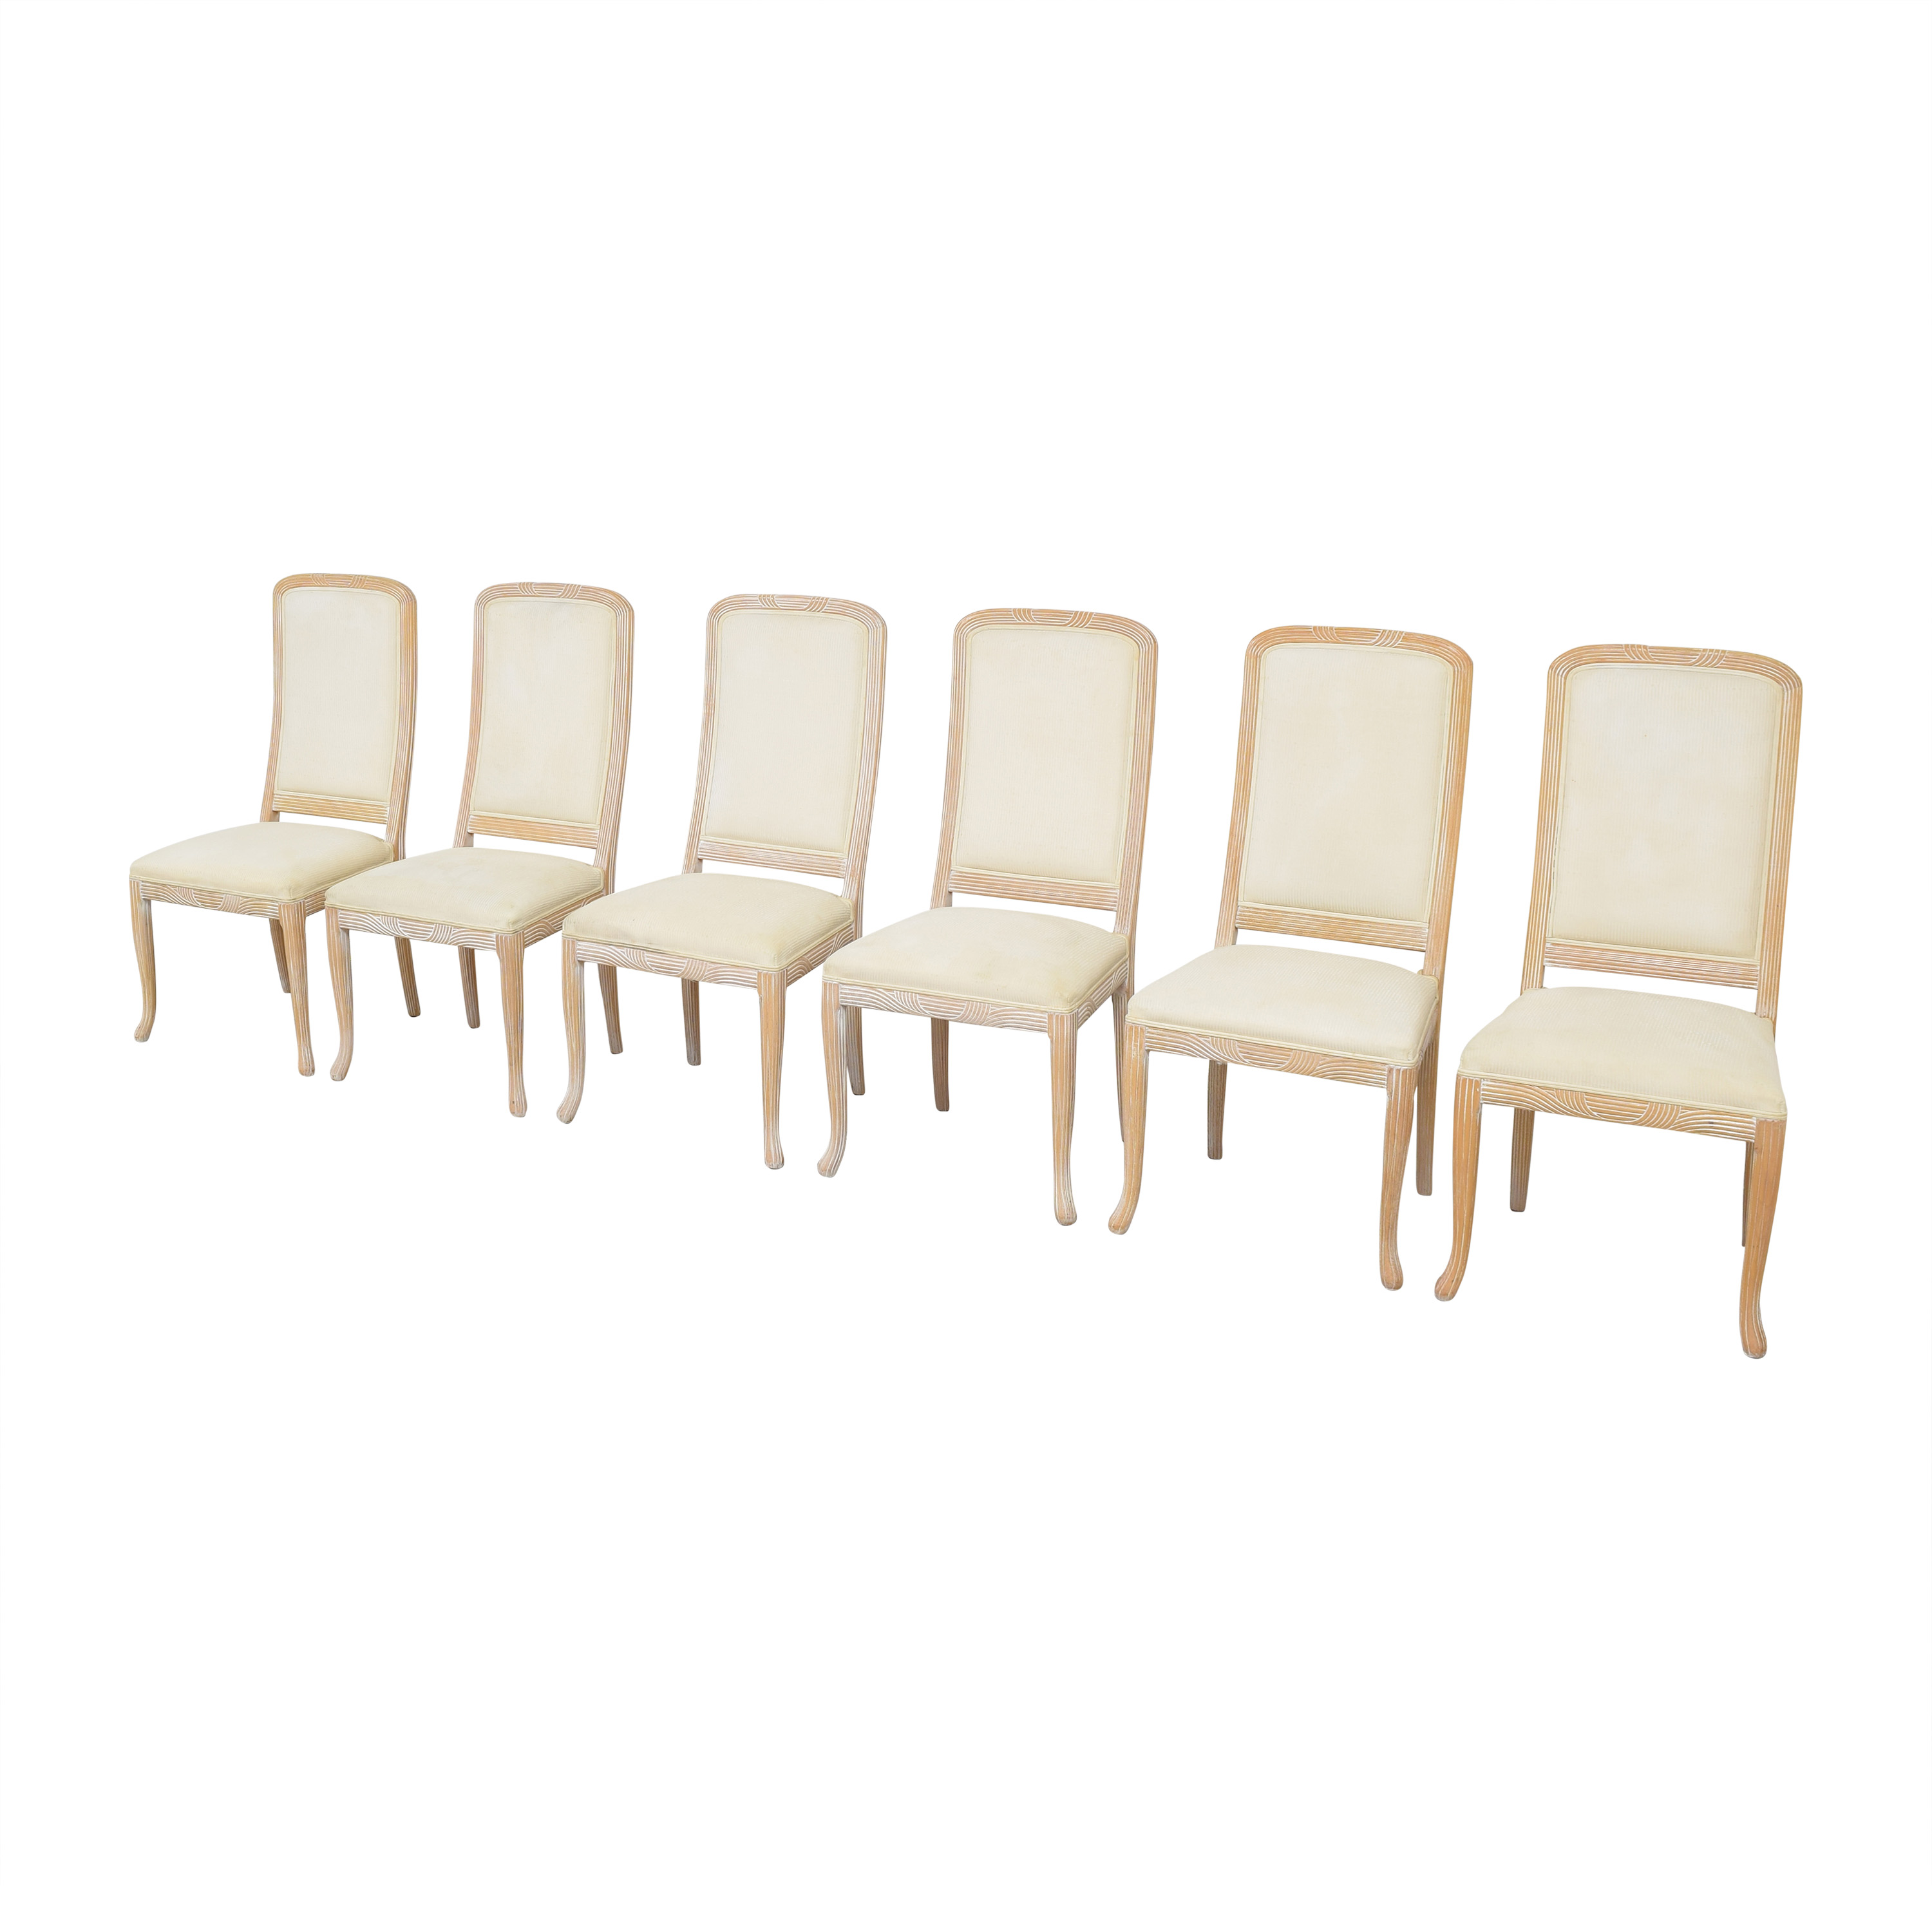 Buying & Design Buying & Design Upholstered Dining Side Chairs